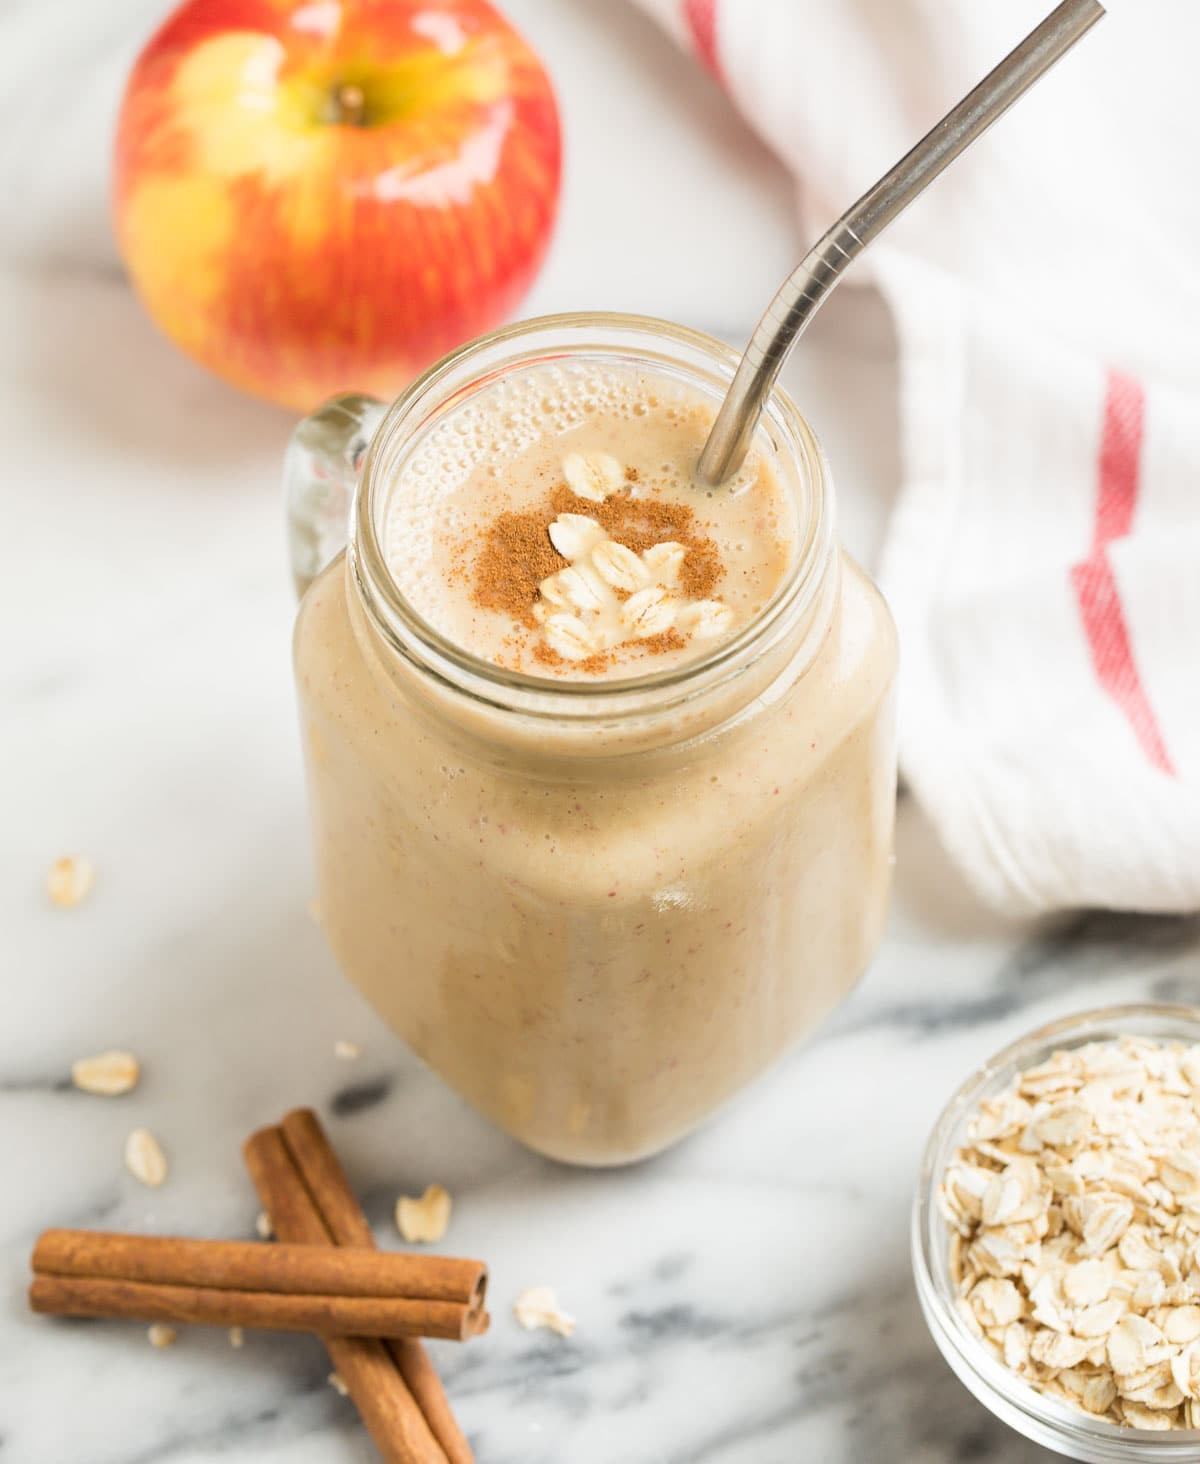 Smoothie Of Apple And Cinnamon